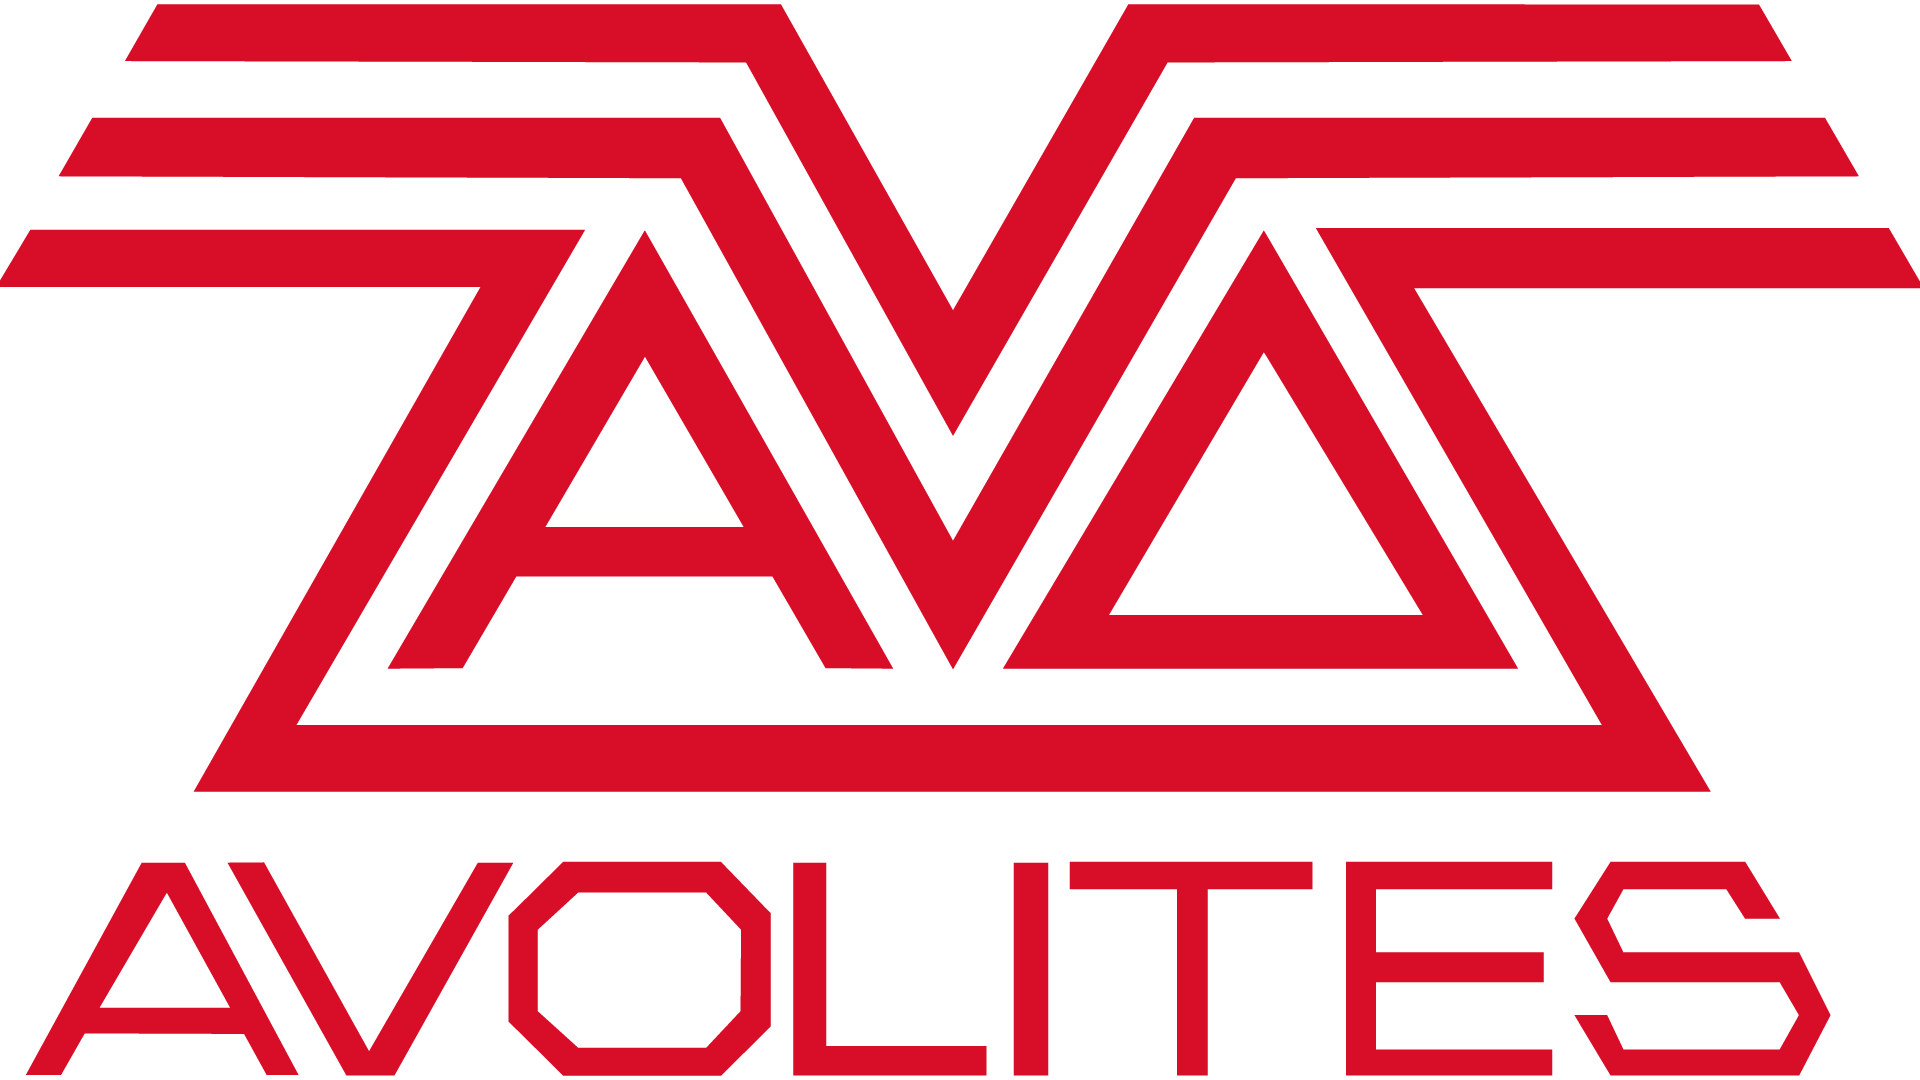 The Avolites family is expanding from North America to Asia